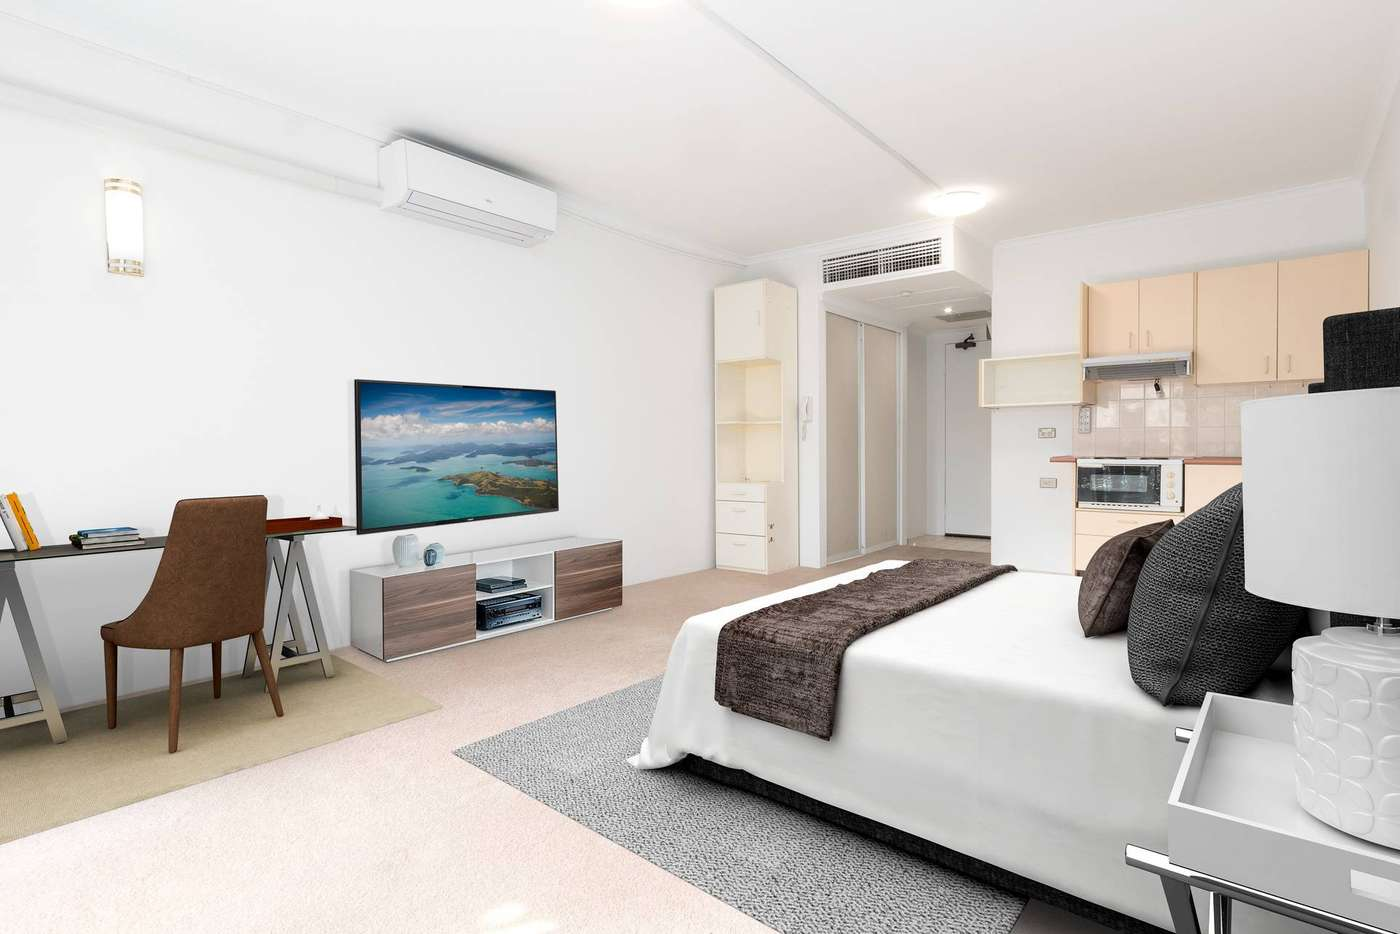 Fifth view of Homely apartment listing, 37/75-79 Jersey Street, Hornsby NSW 2077